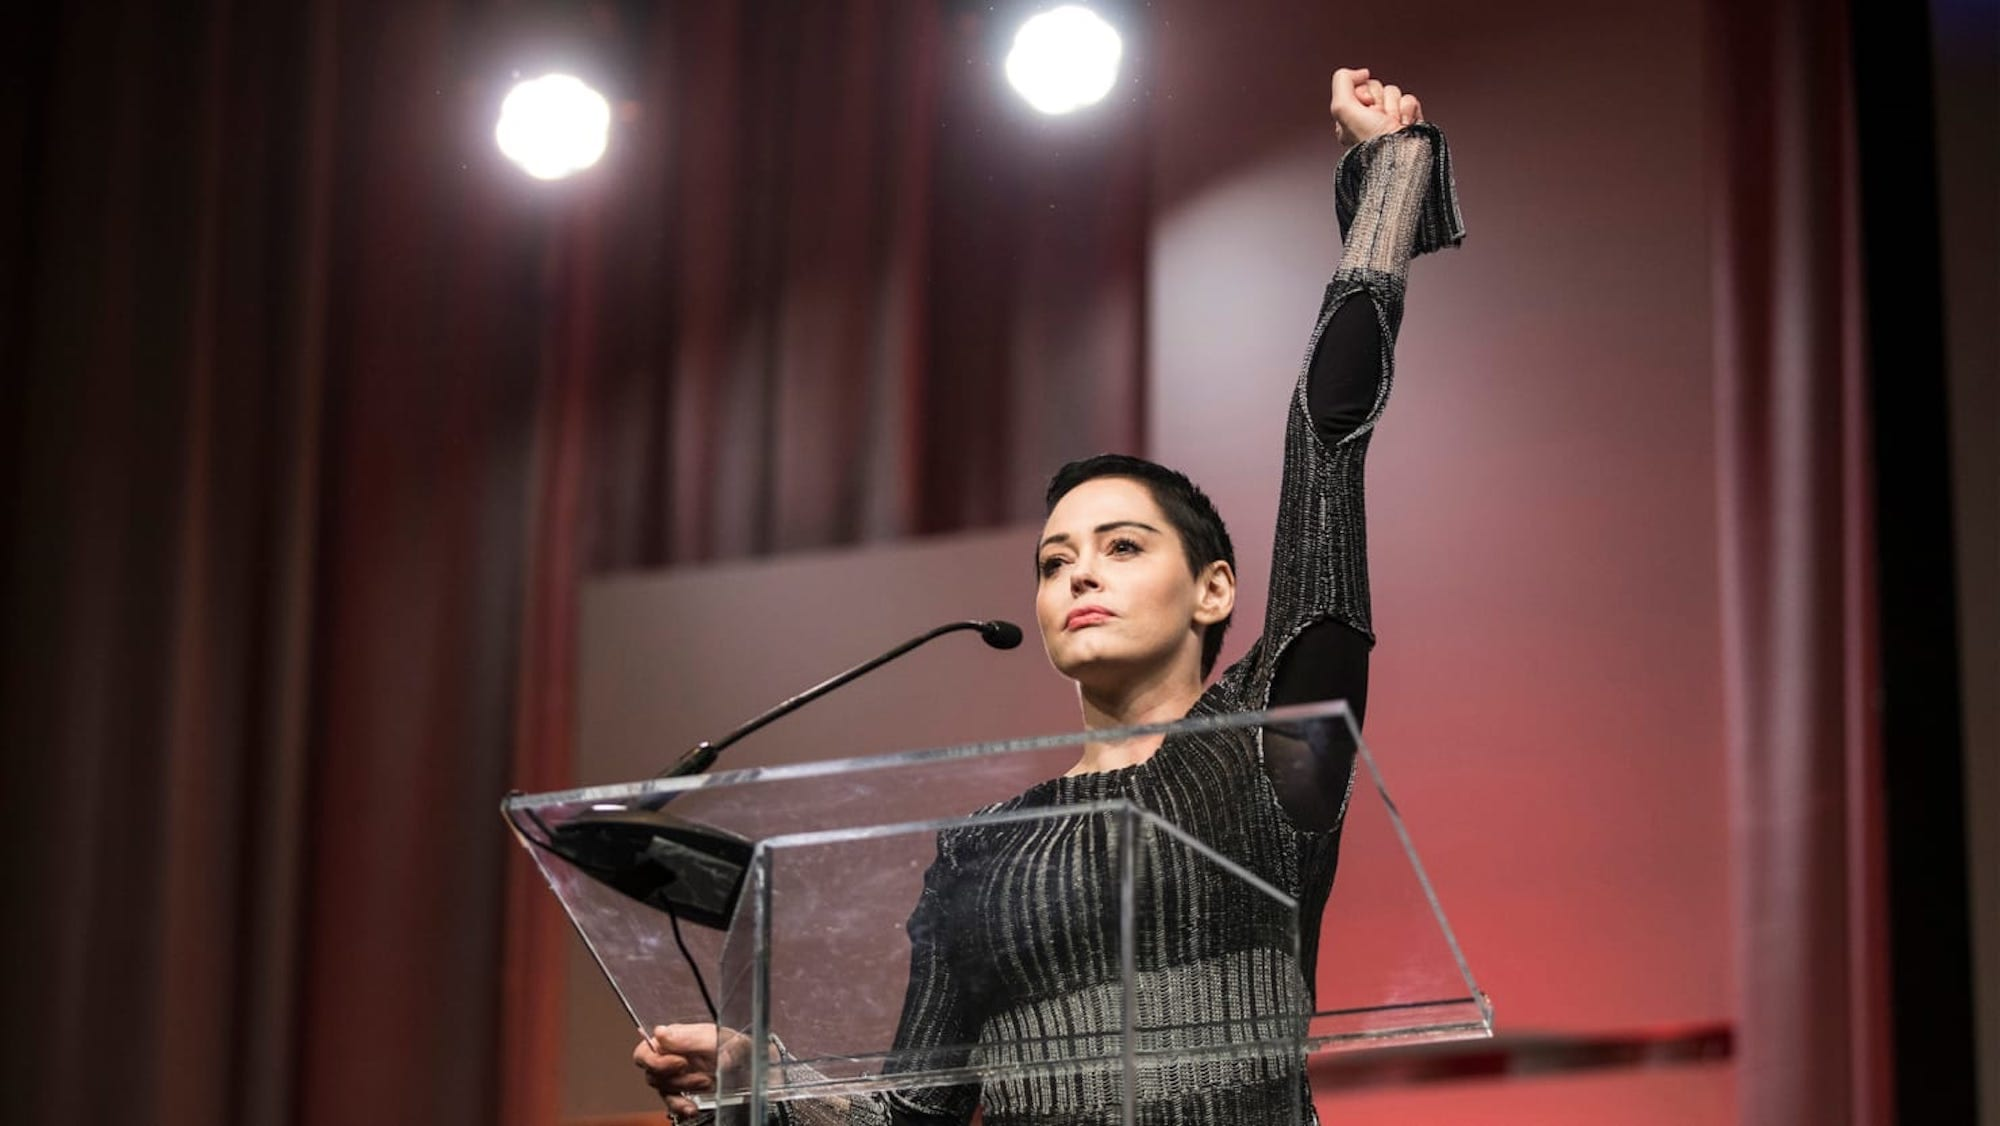 """Rose McGowan's new docuseries 'Citizen Rose' premiered last night with a two-hour episode on E! and the reviews are landing. According to The Hollywood Reporter, """"McGowan leaves no stone unturned when documenting her life as an activist in the #MeToo era."""""""